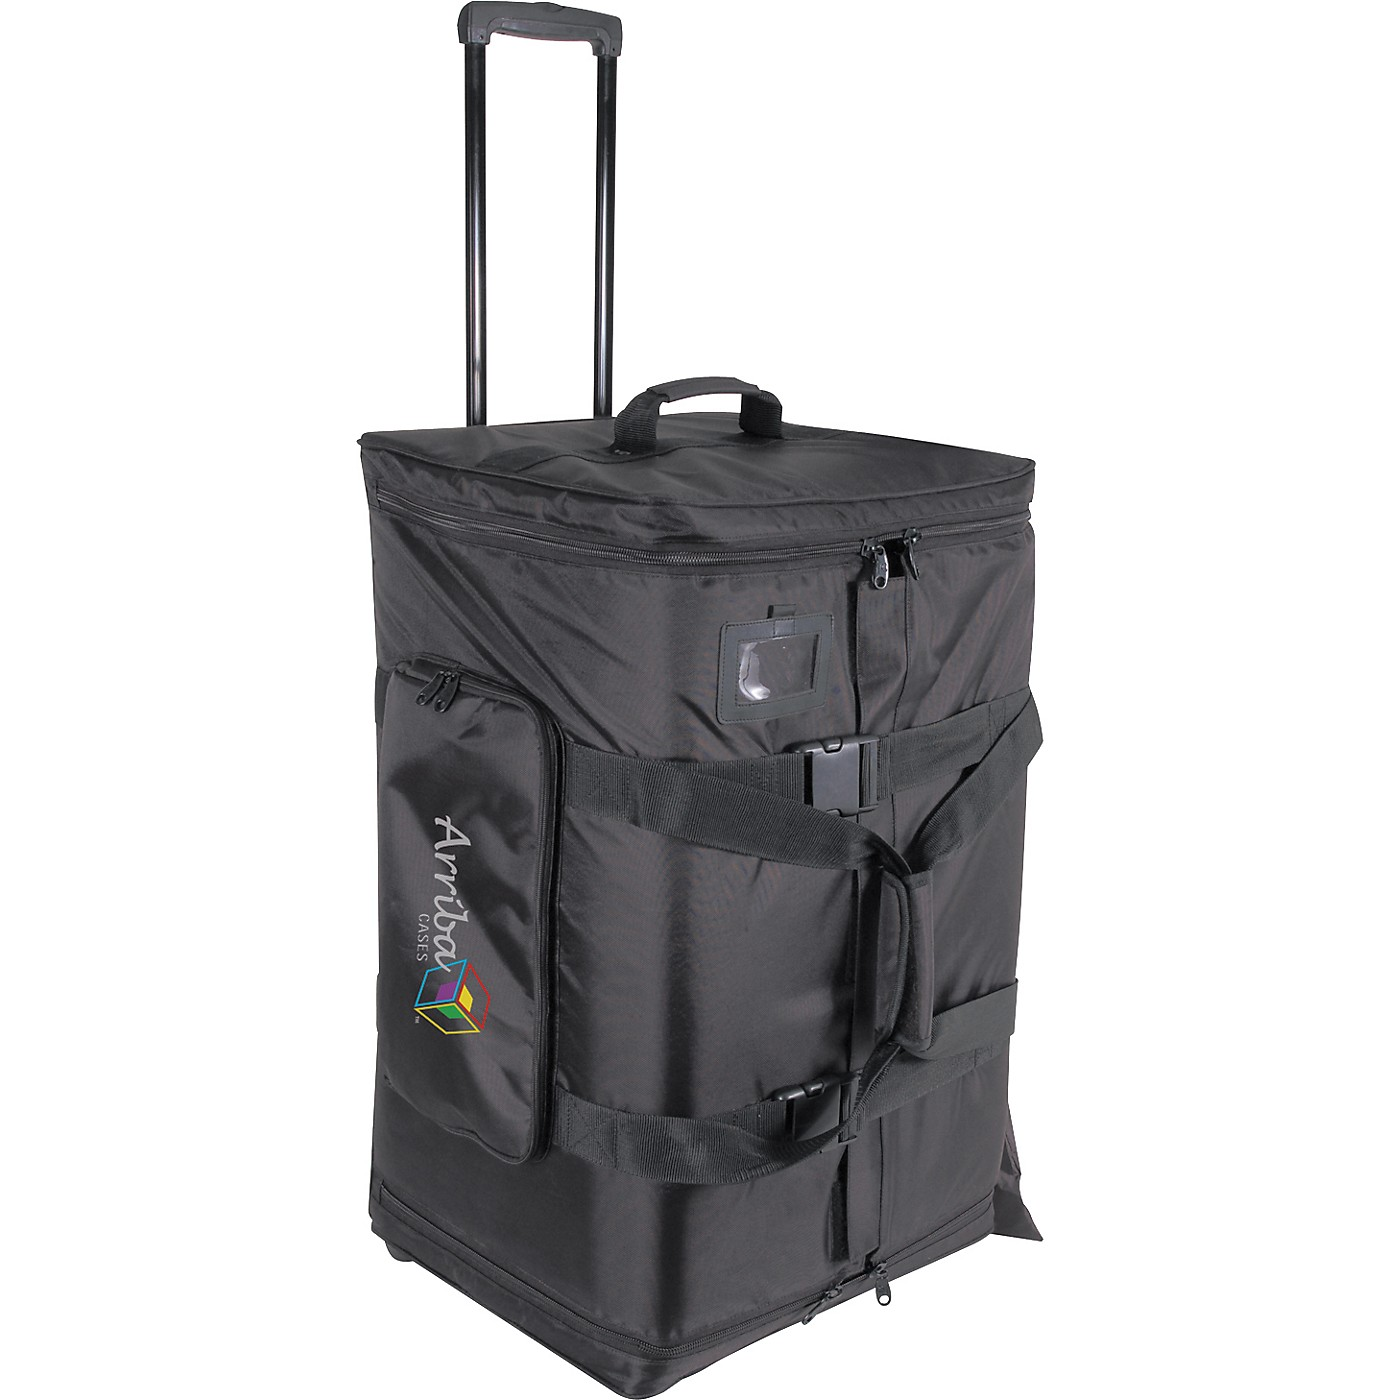 Arriba Cases AS-175 Speaker and Stand Combo Bag with Wheels thumbnail